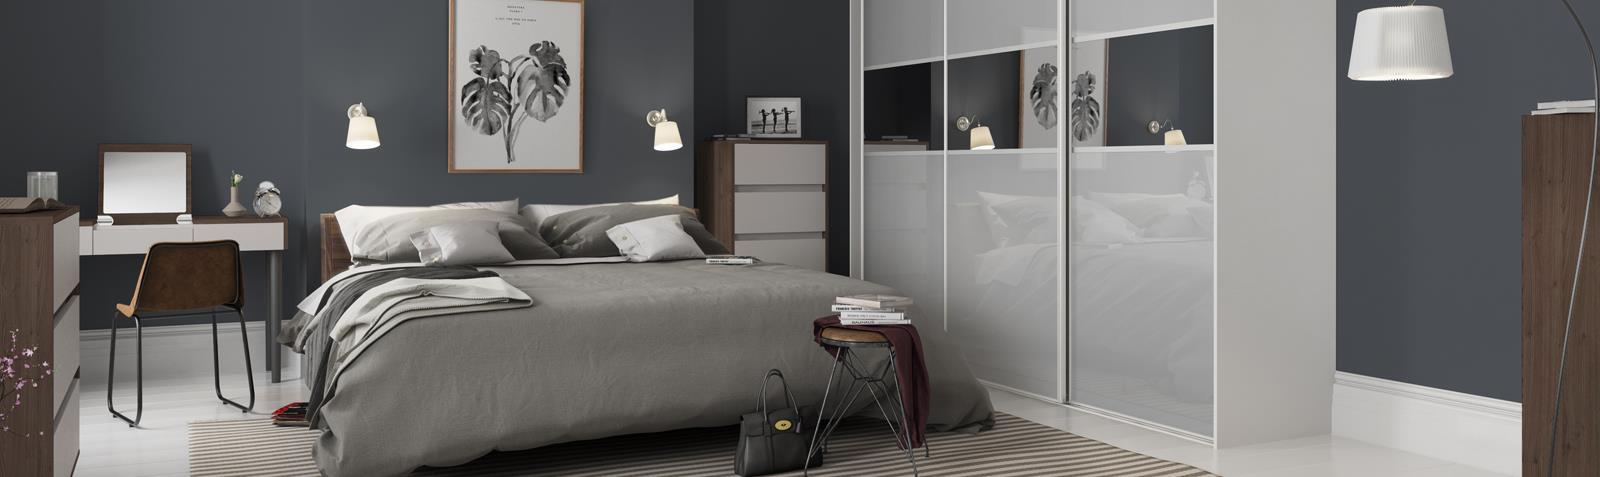 Classic 3 panel Fineline Light Grey / Grey Mirror doors with Silver frame | Spaceslide & Classic: 3 panel Fineline Light Grey / Grey Mirror doors with Silver ...